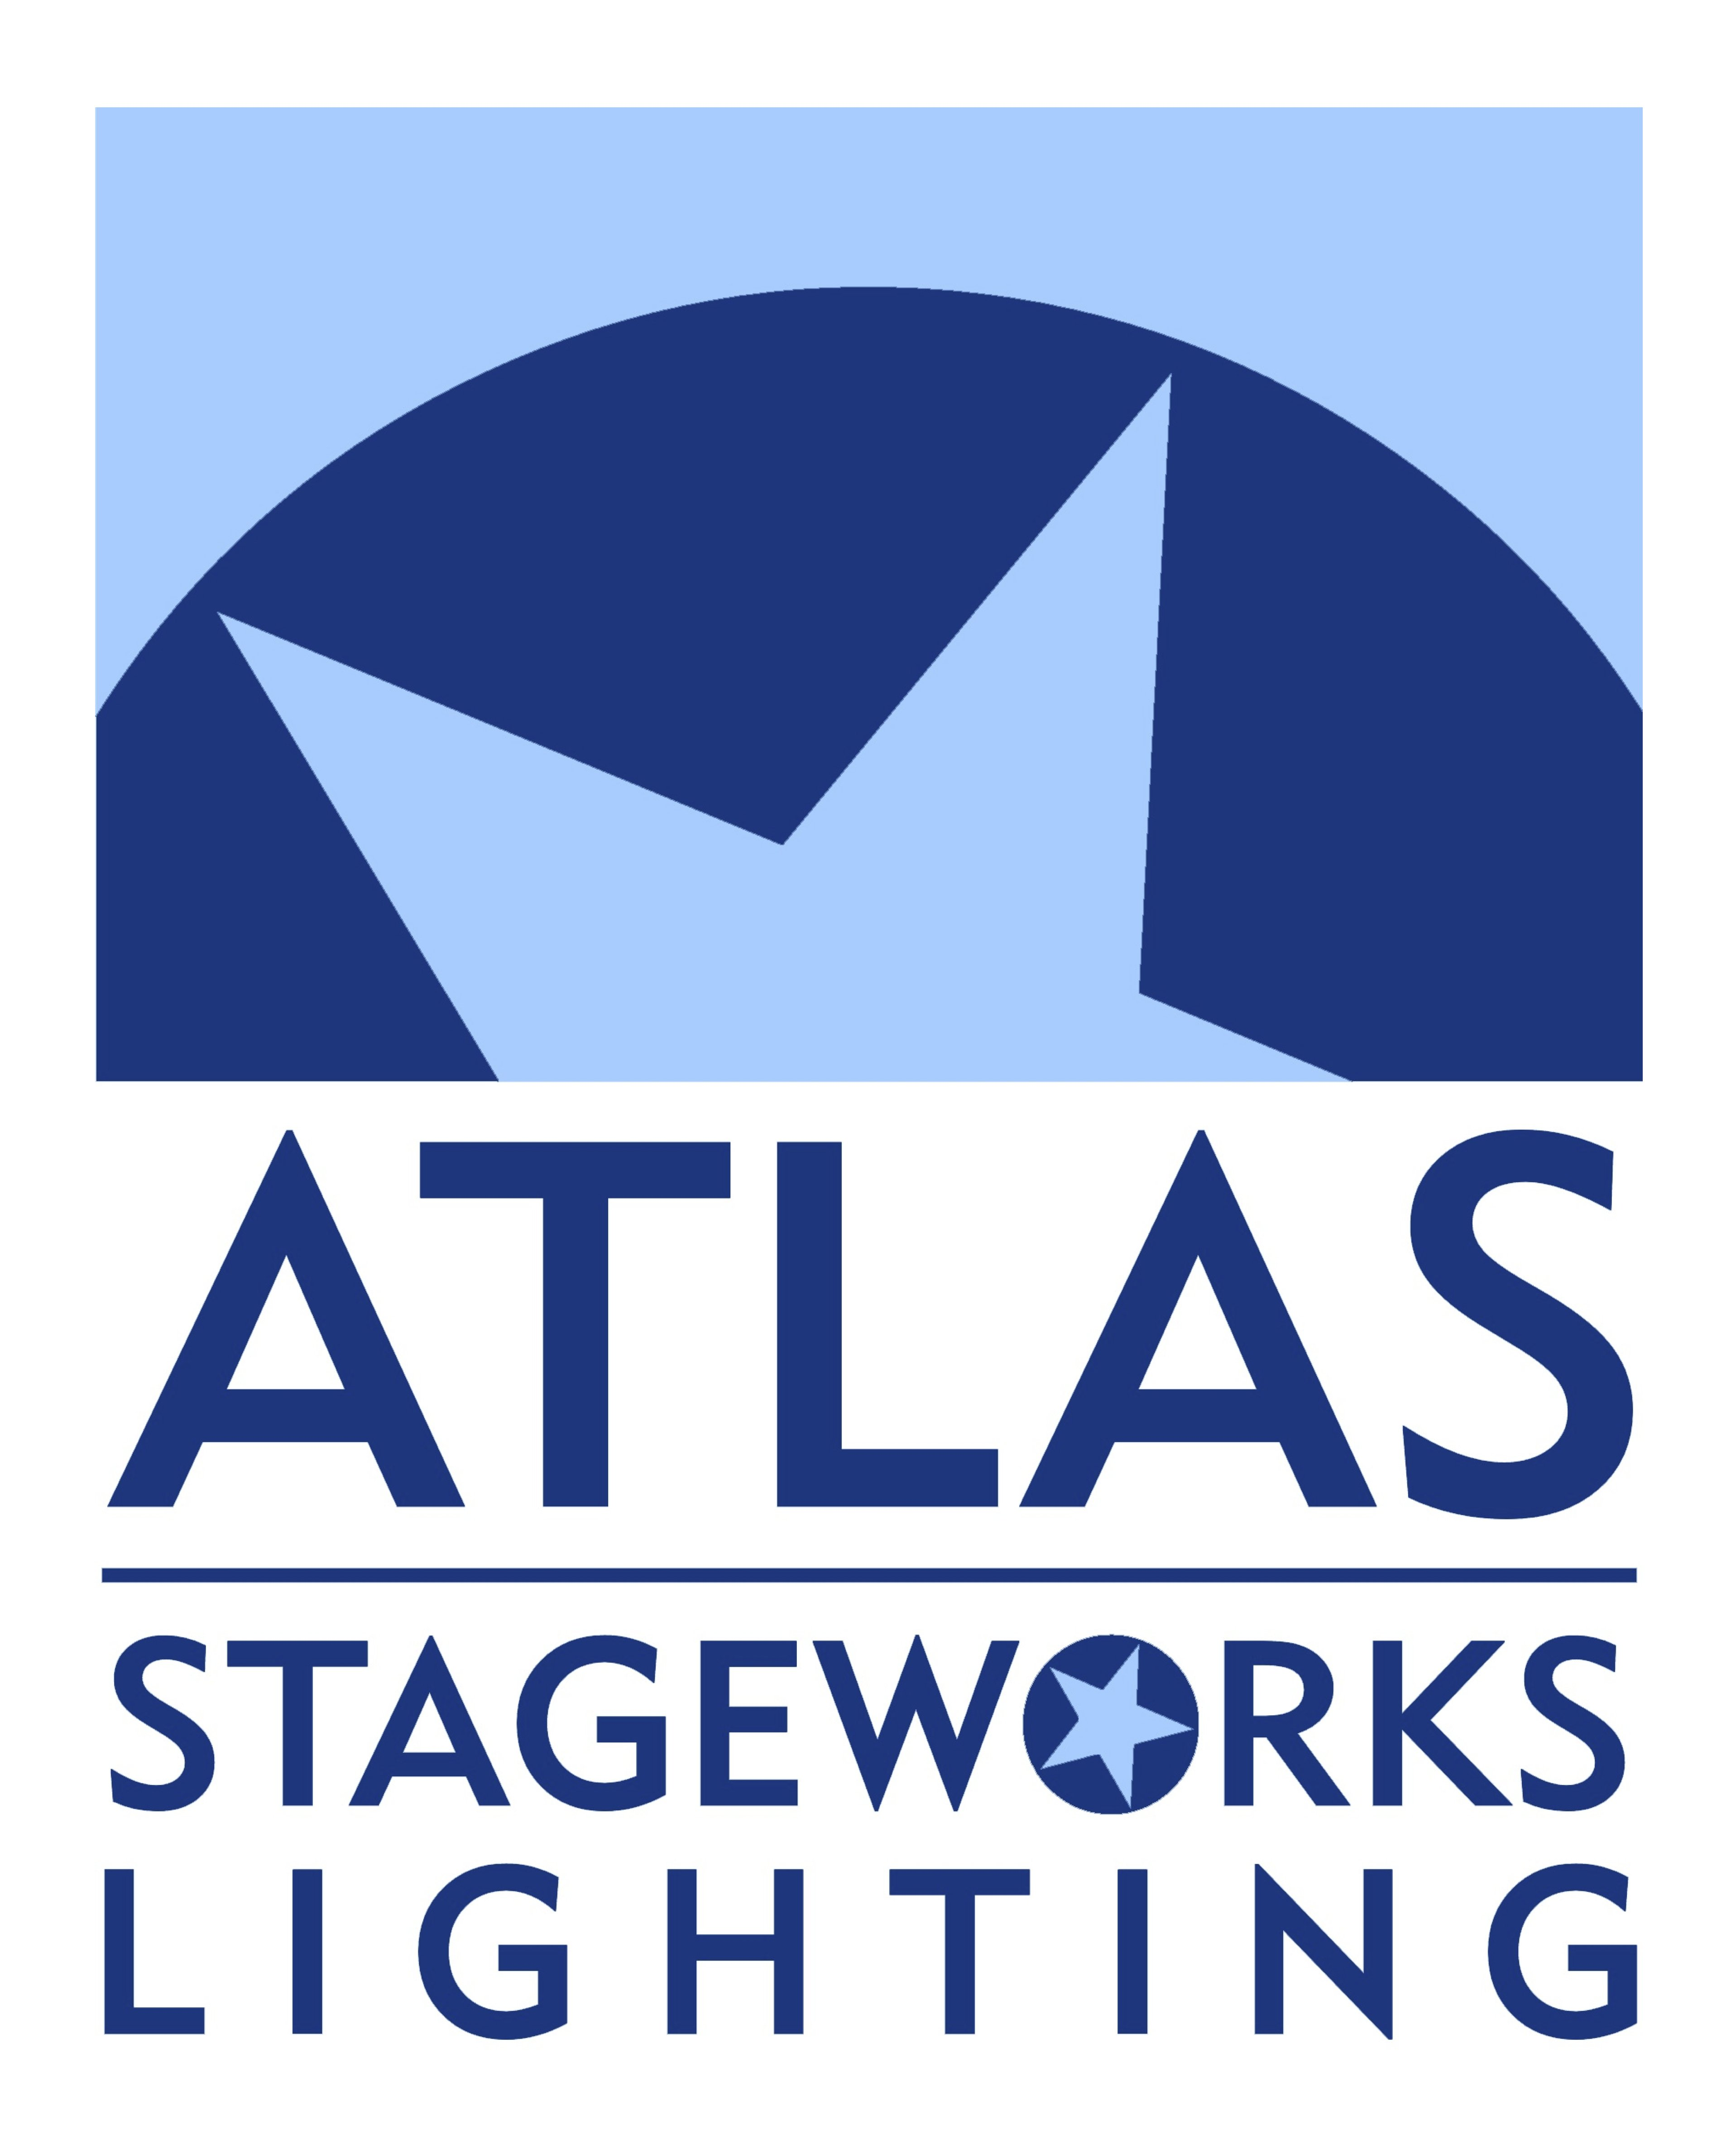 Atlas Stageworks Lighting Lighting Your World Of Events